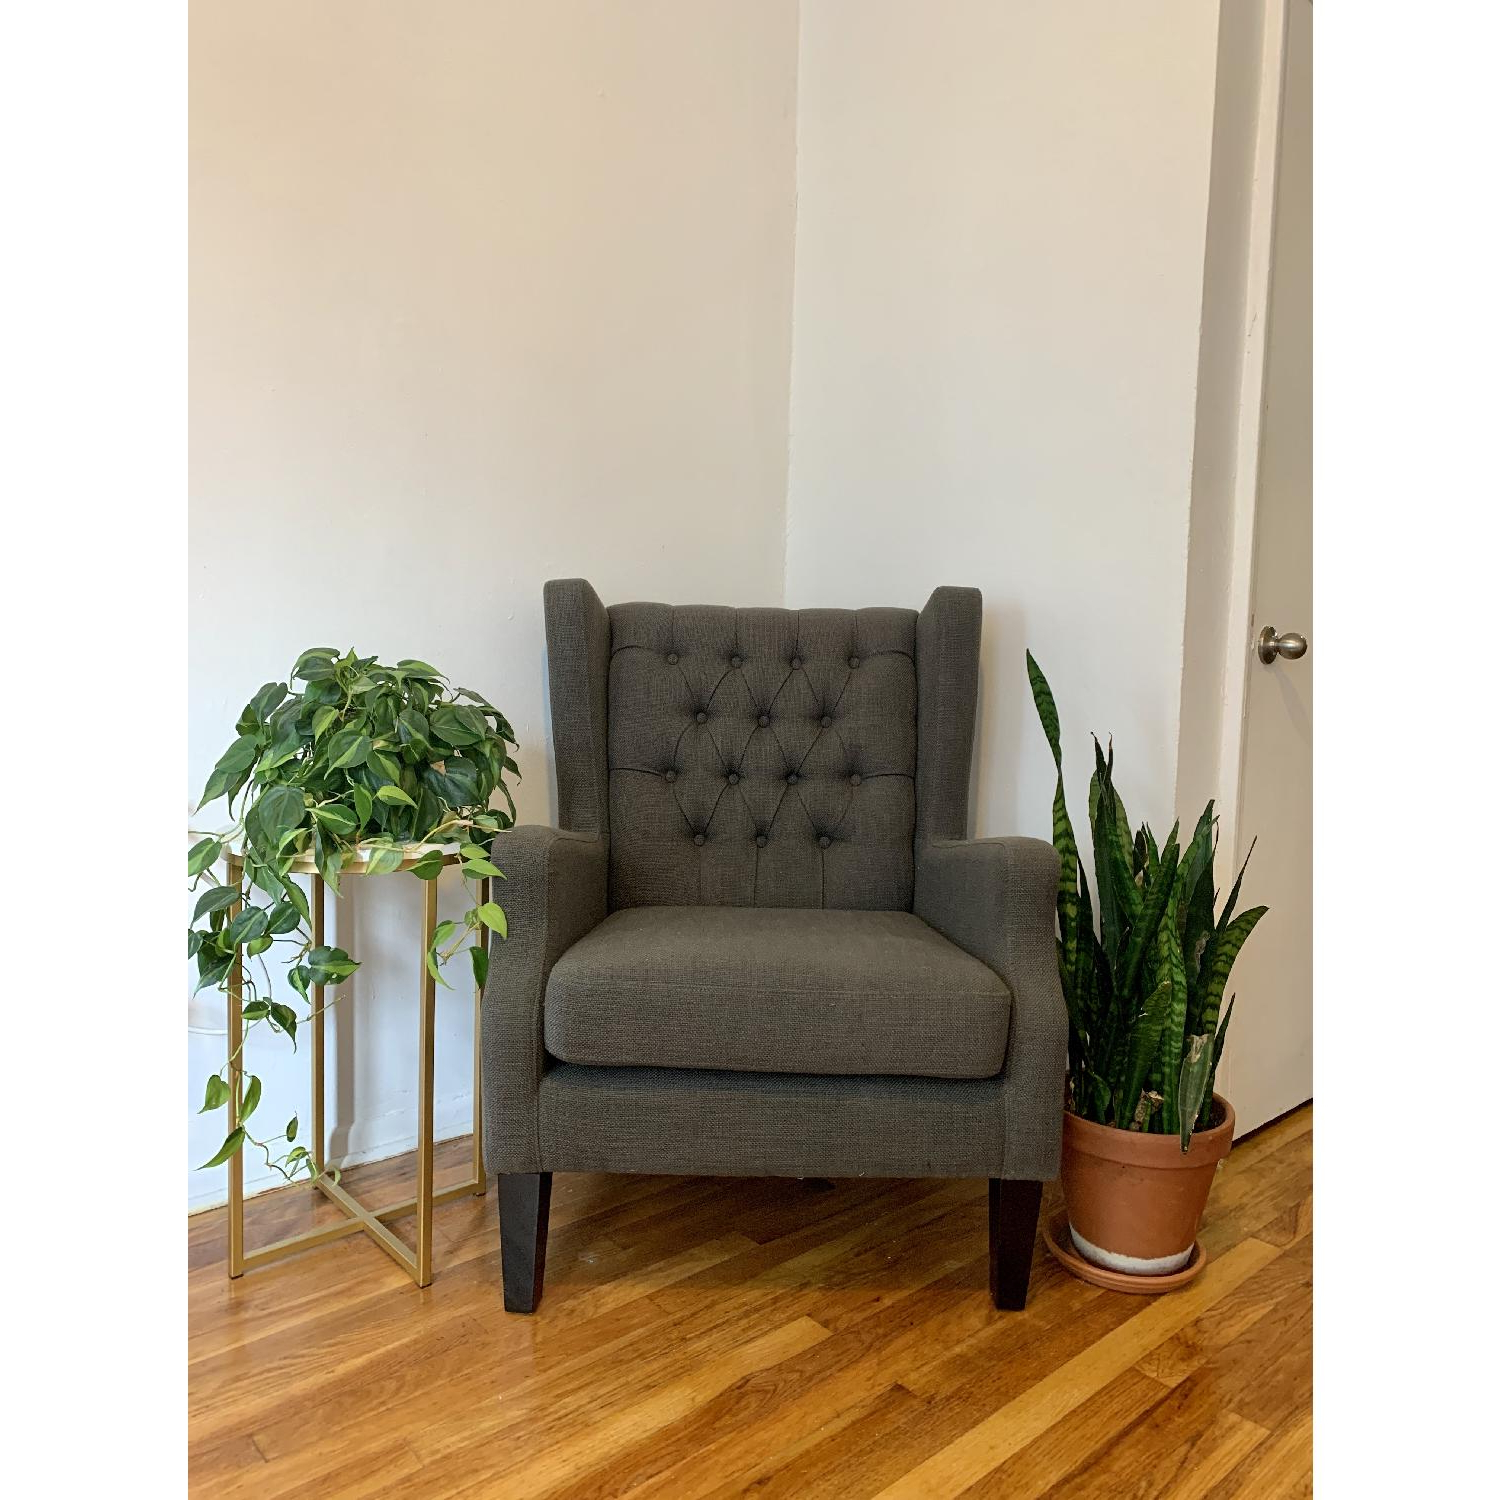 Threes Post Allis Wingback Chair With Regard To Fashionable Allis Tufted Polyester Blend Wingback Chairs (View 18 of 20)